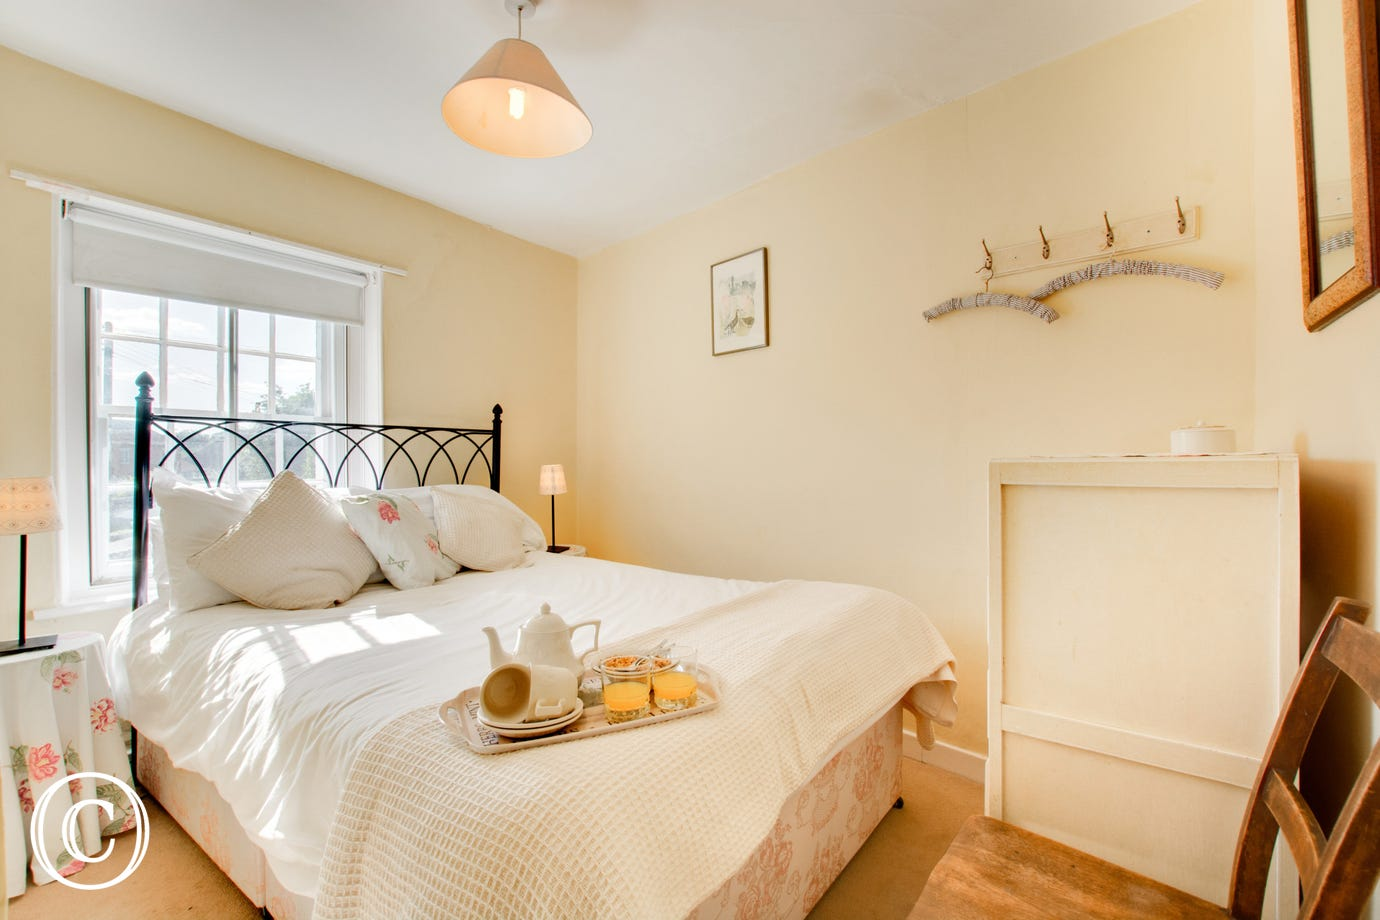 Pretty compact double bedroom with a wrought iron double bed